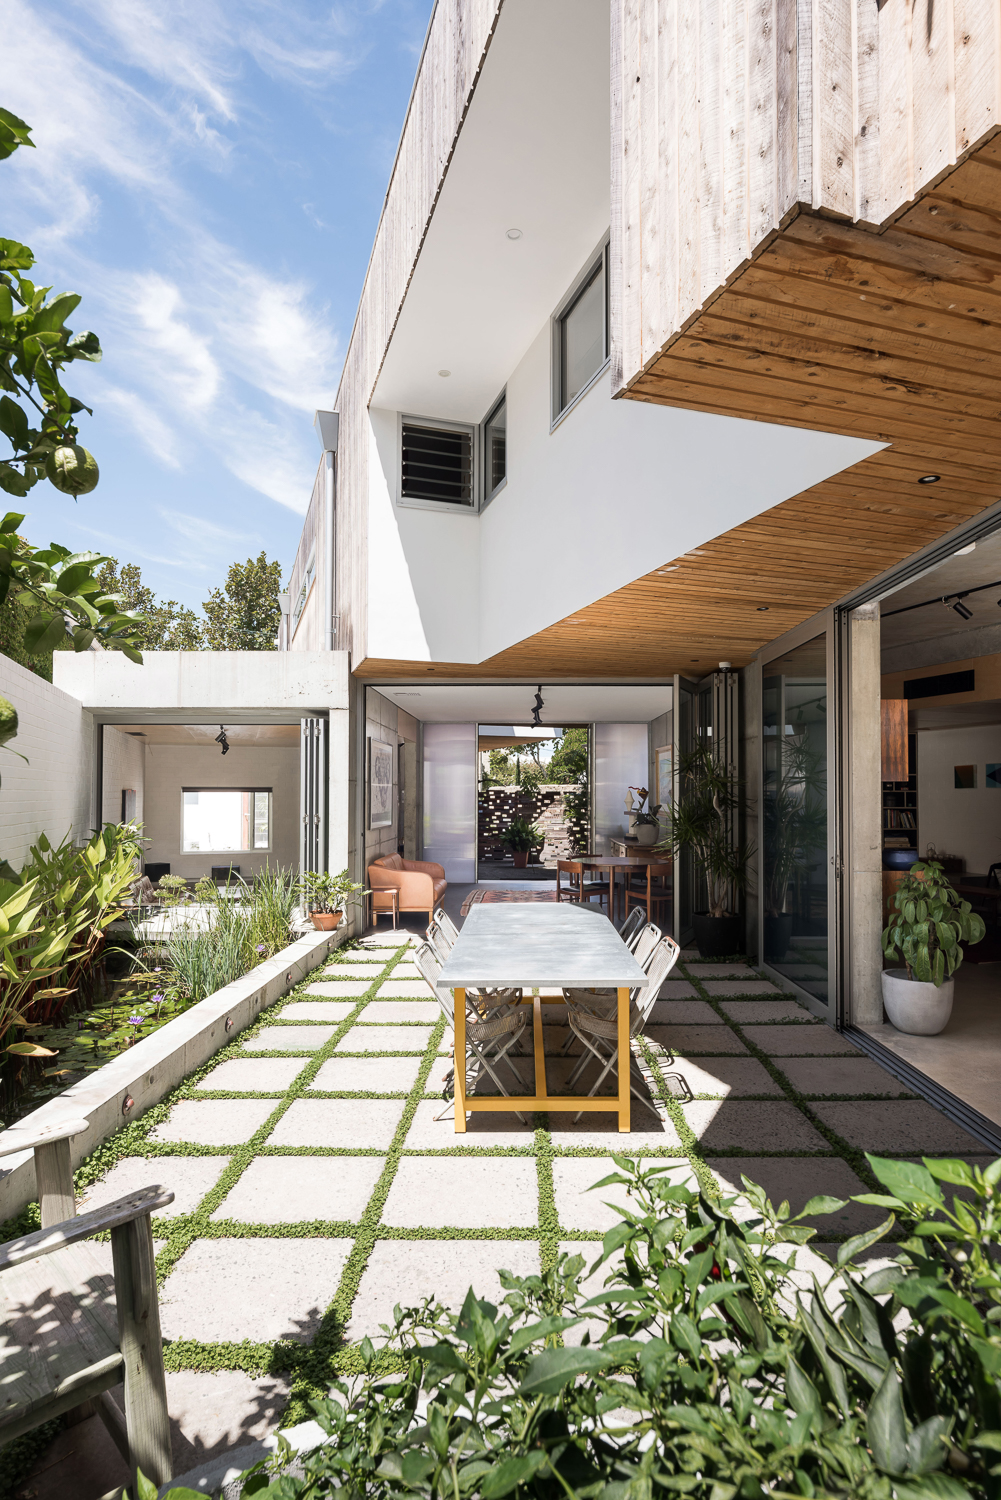 Gallery Of Silver Street House By Ehdo Architecture Local Design And Interiors South Fremantle, Wa Image 4